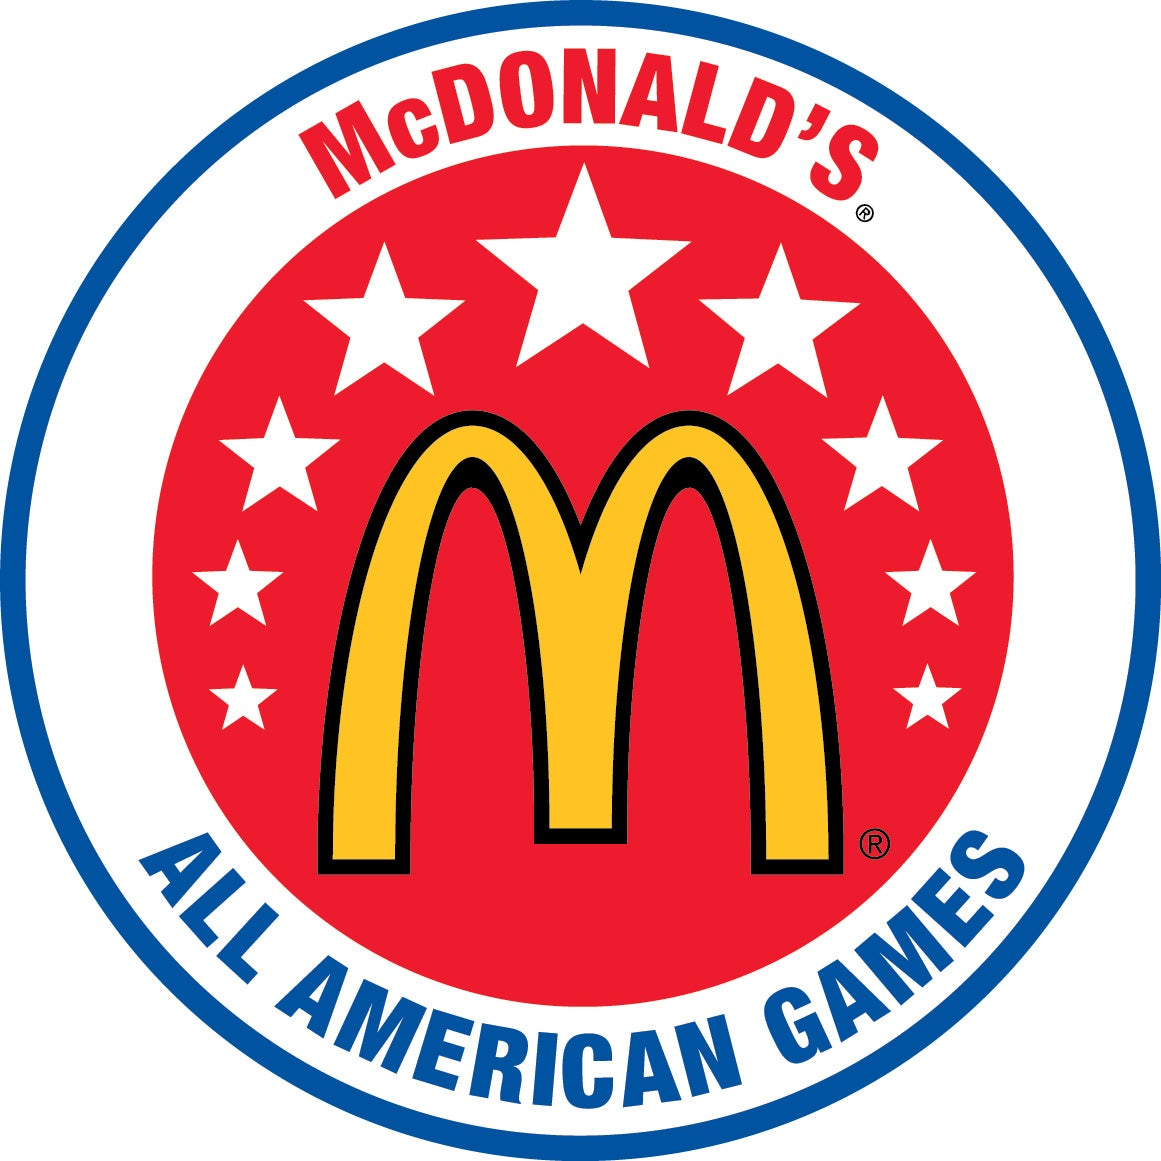 All American Games Logo - Web.jpg